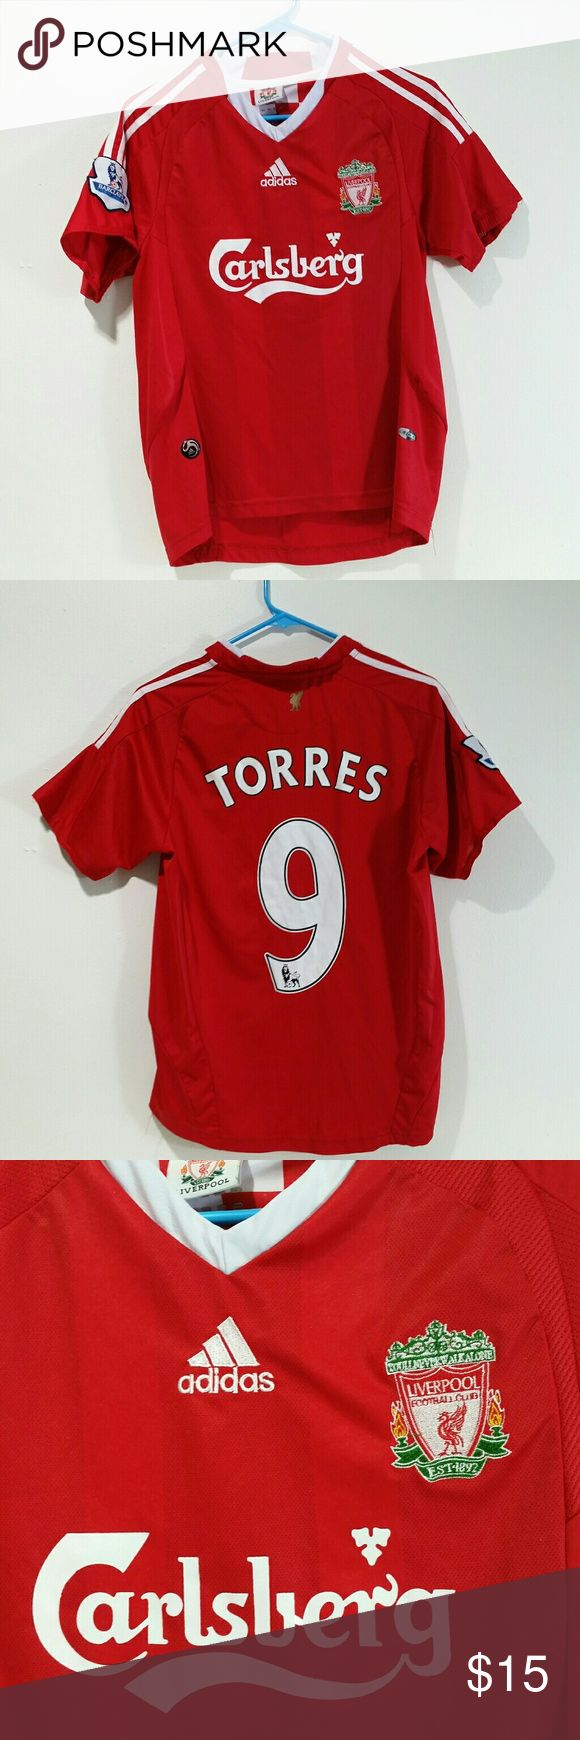 Adidas Liverpool Football Soccer Jersey Torres Liverpool ...